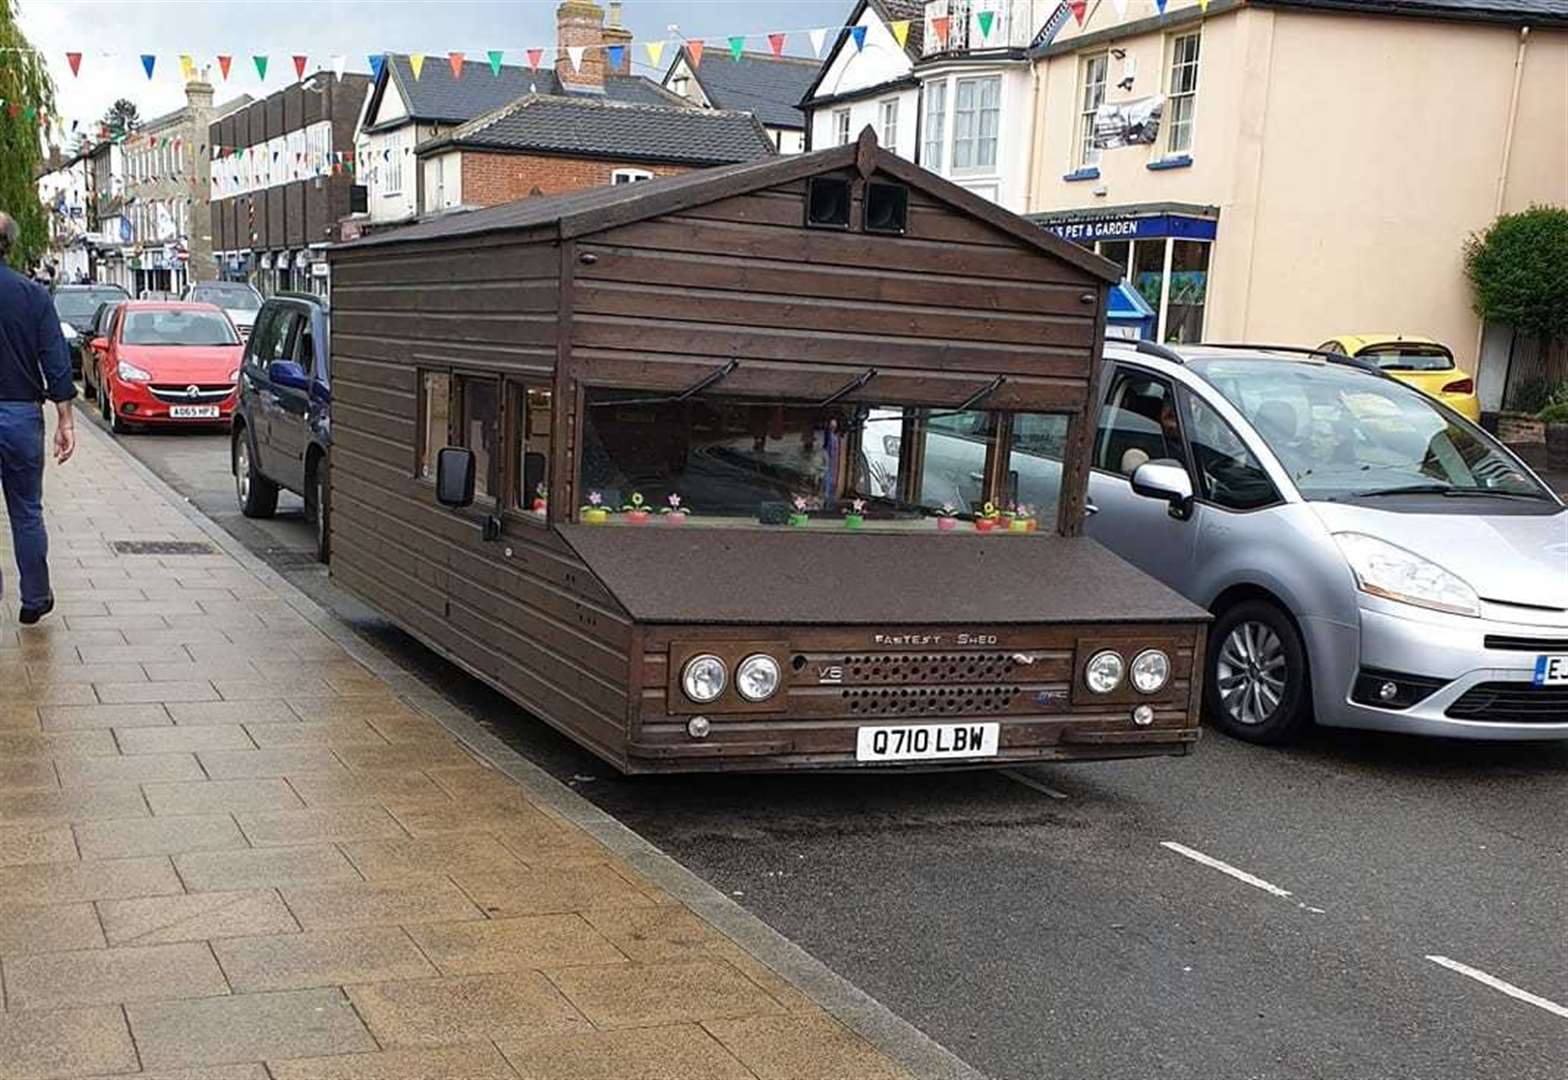 VIDEO: World's fastest shed on wheels spotted in Diss